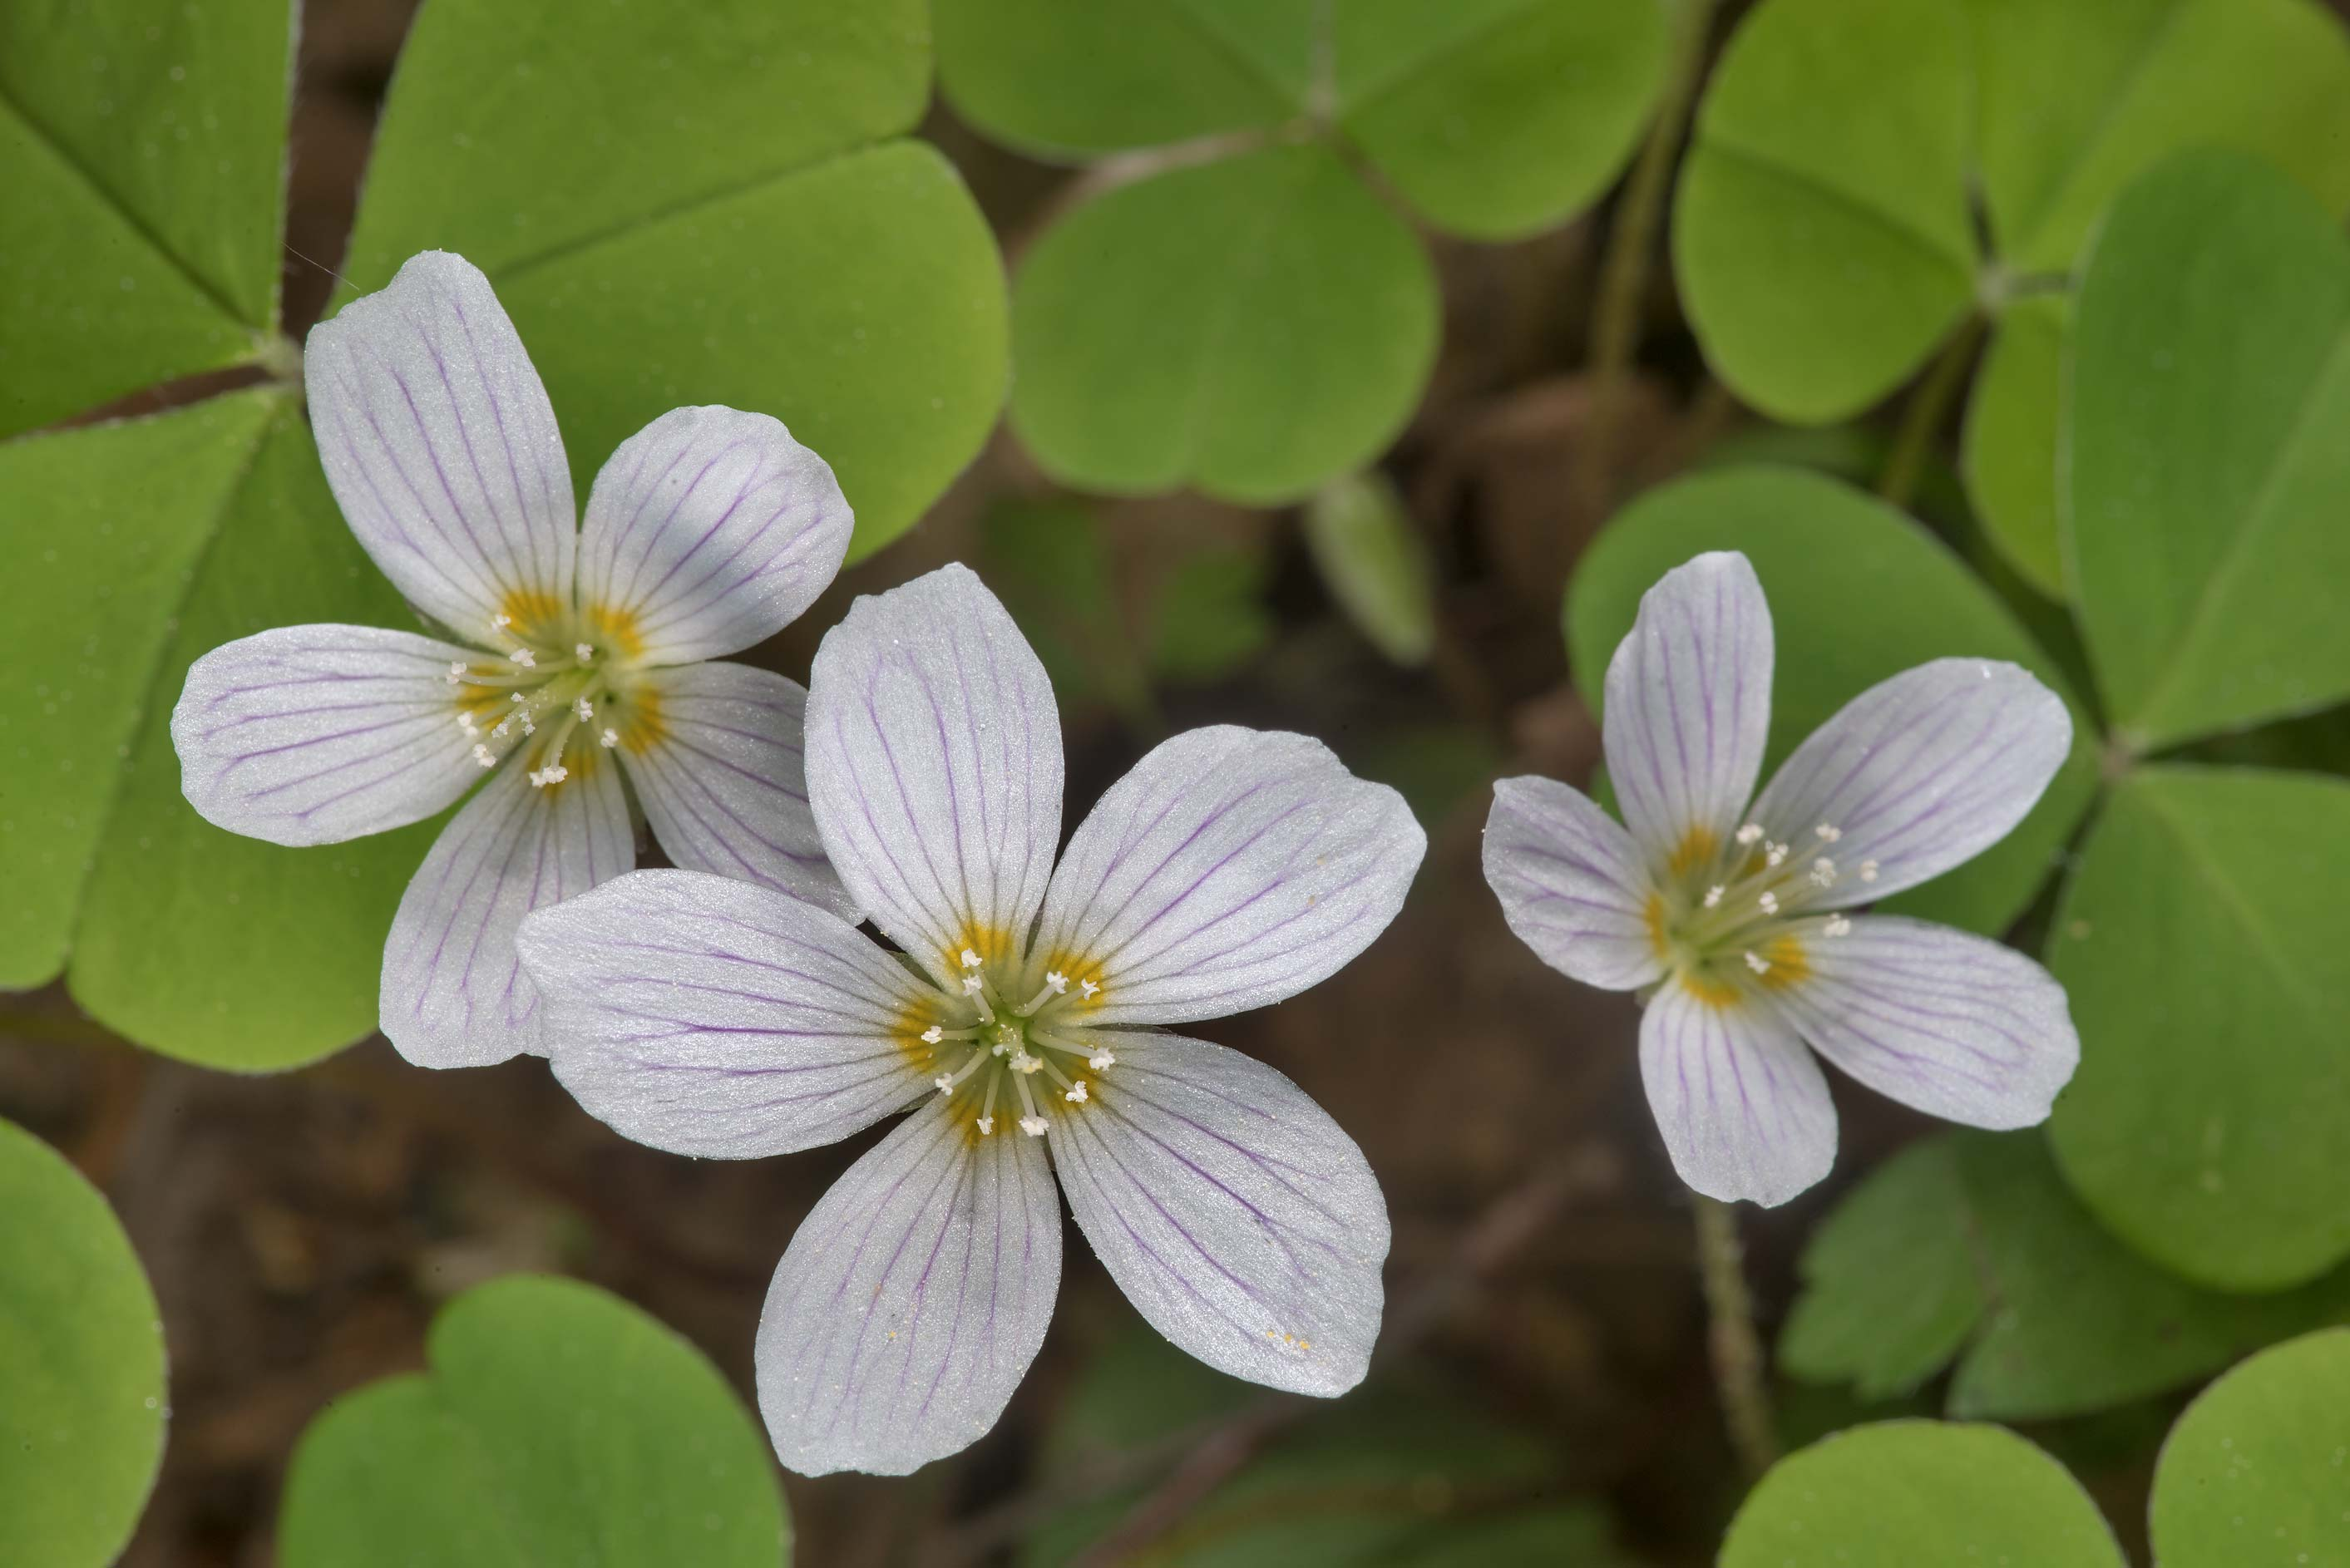 Wood sorrel (Oxalis acetosella, Russian name...west from St.Petersburg, Russia